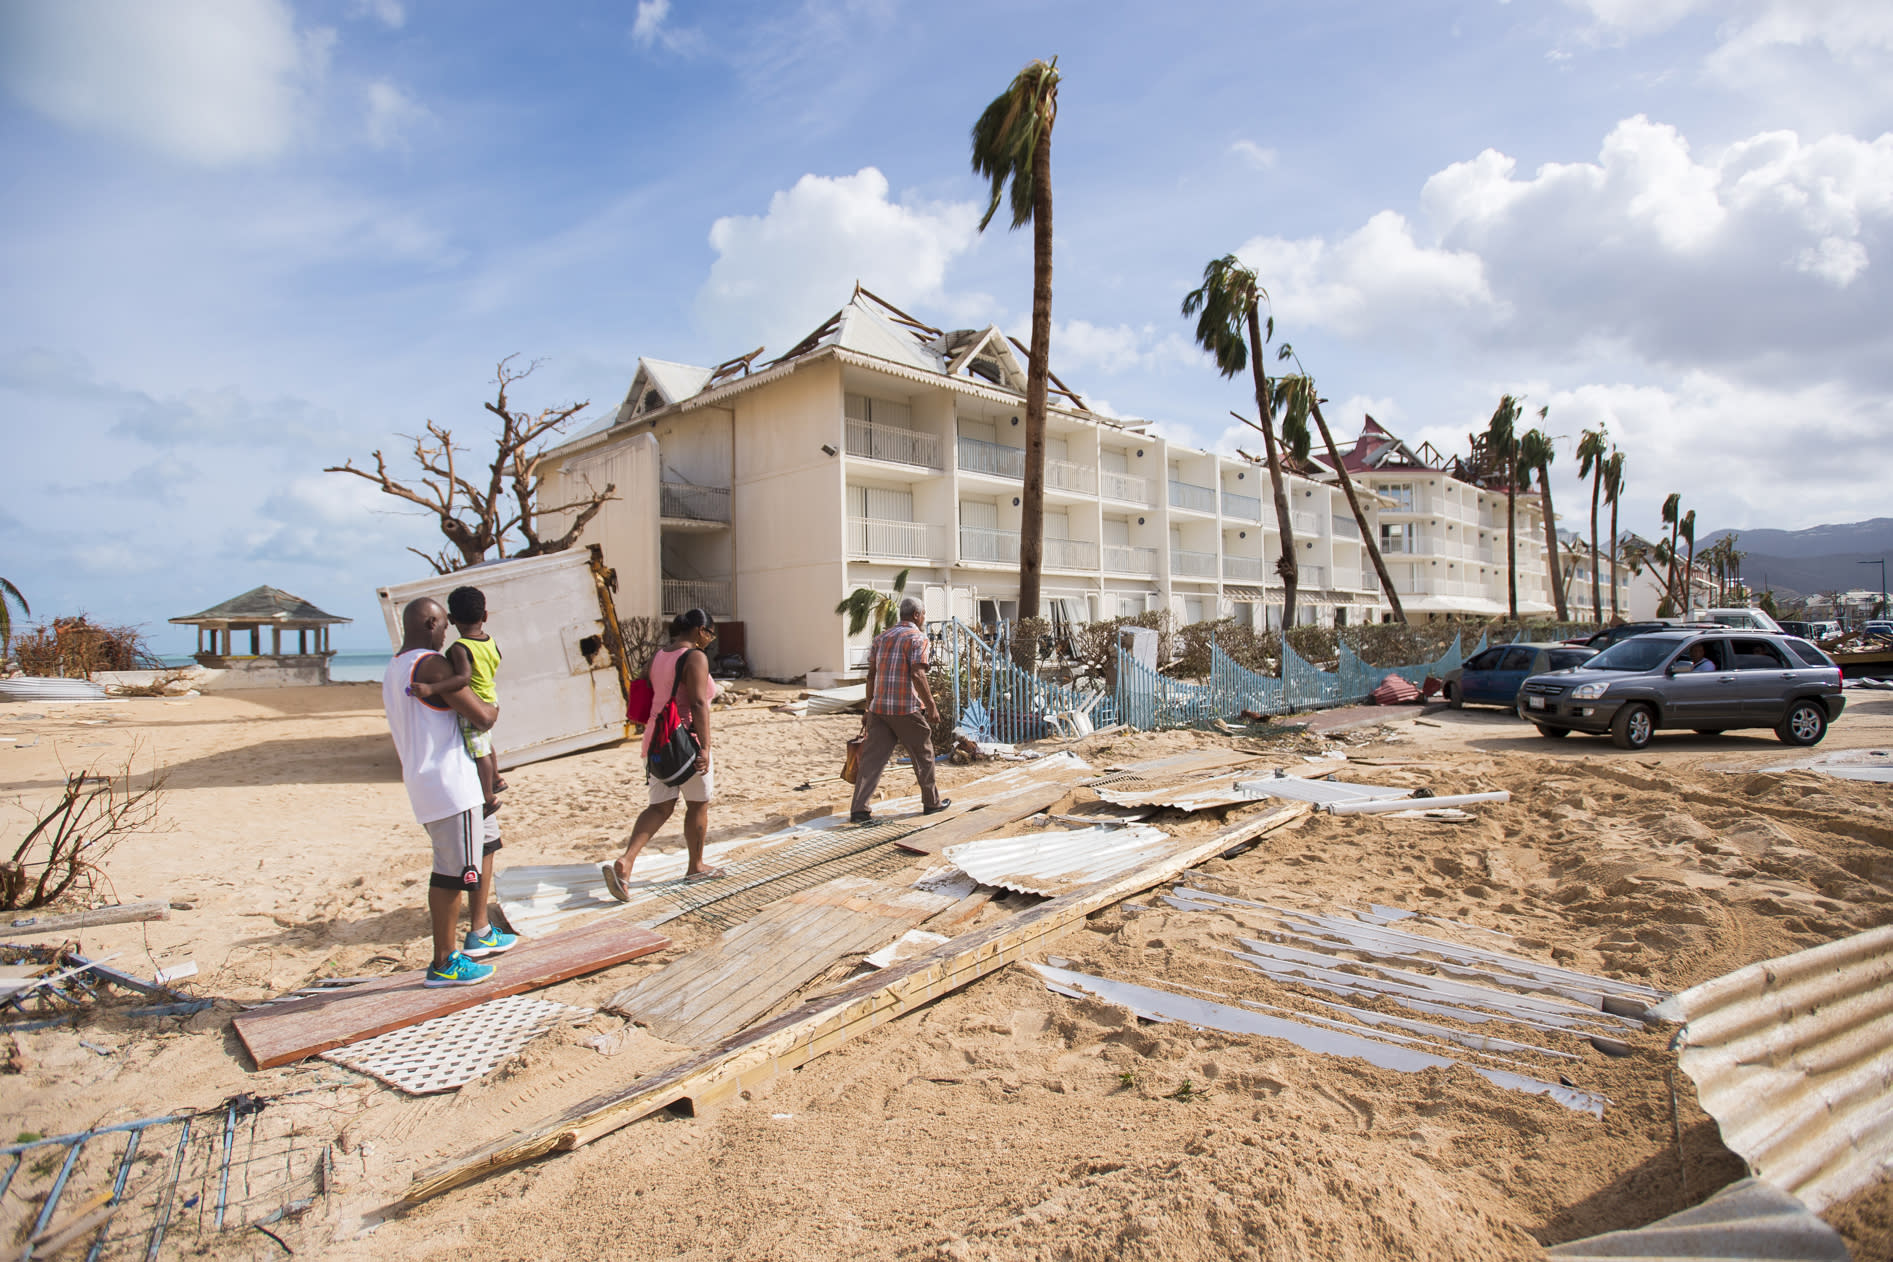 🌪 They keep spending massive amounts of money to rebuild, but the storms keep coming, and at a greater rate. Maybe they need to rethink the way they plan and build cities. <em>amirite?</em> 🌪